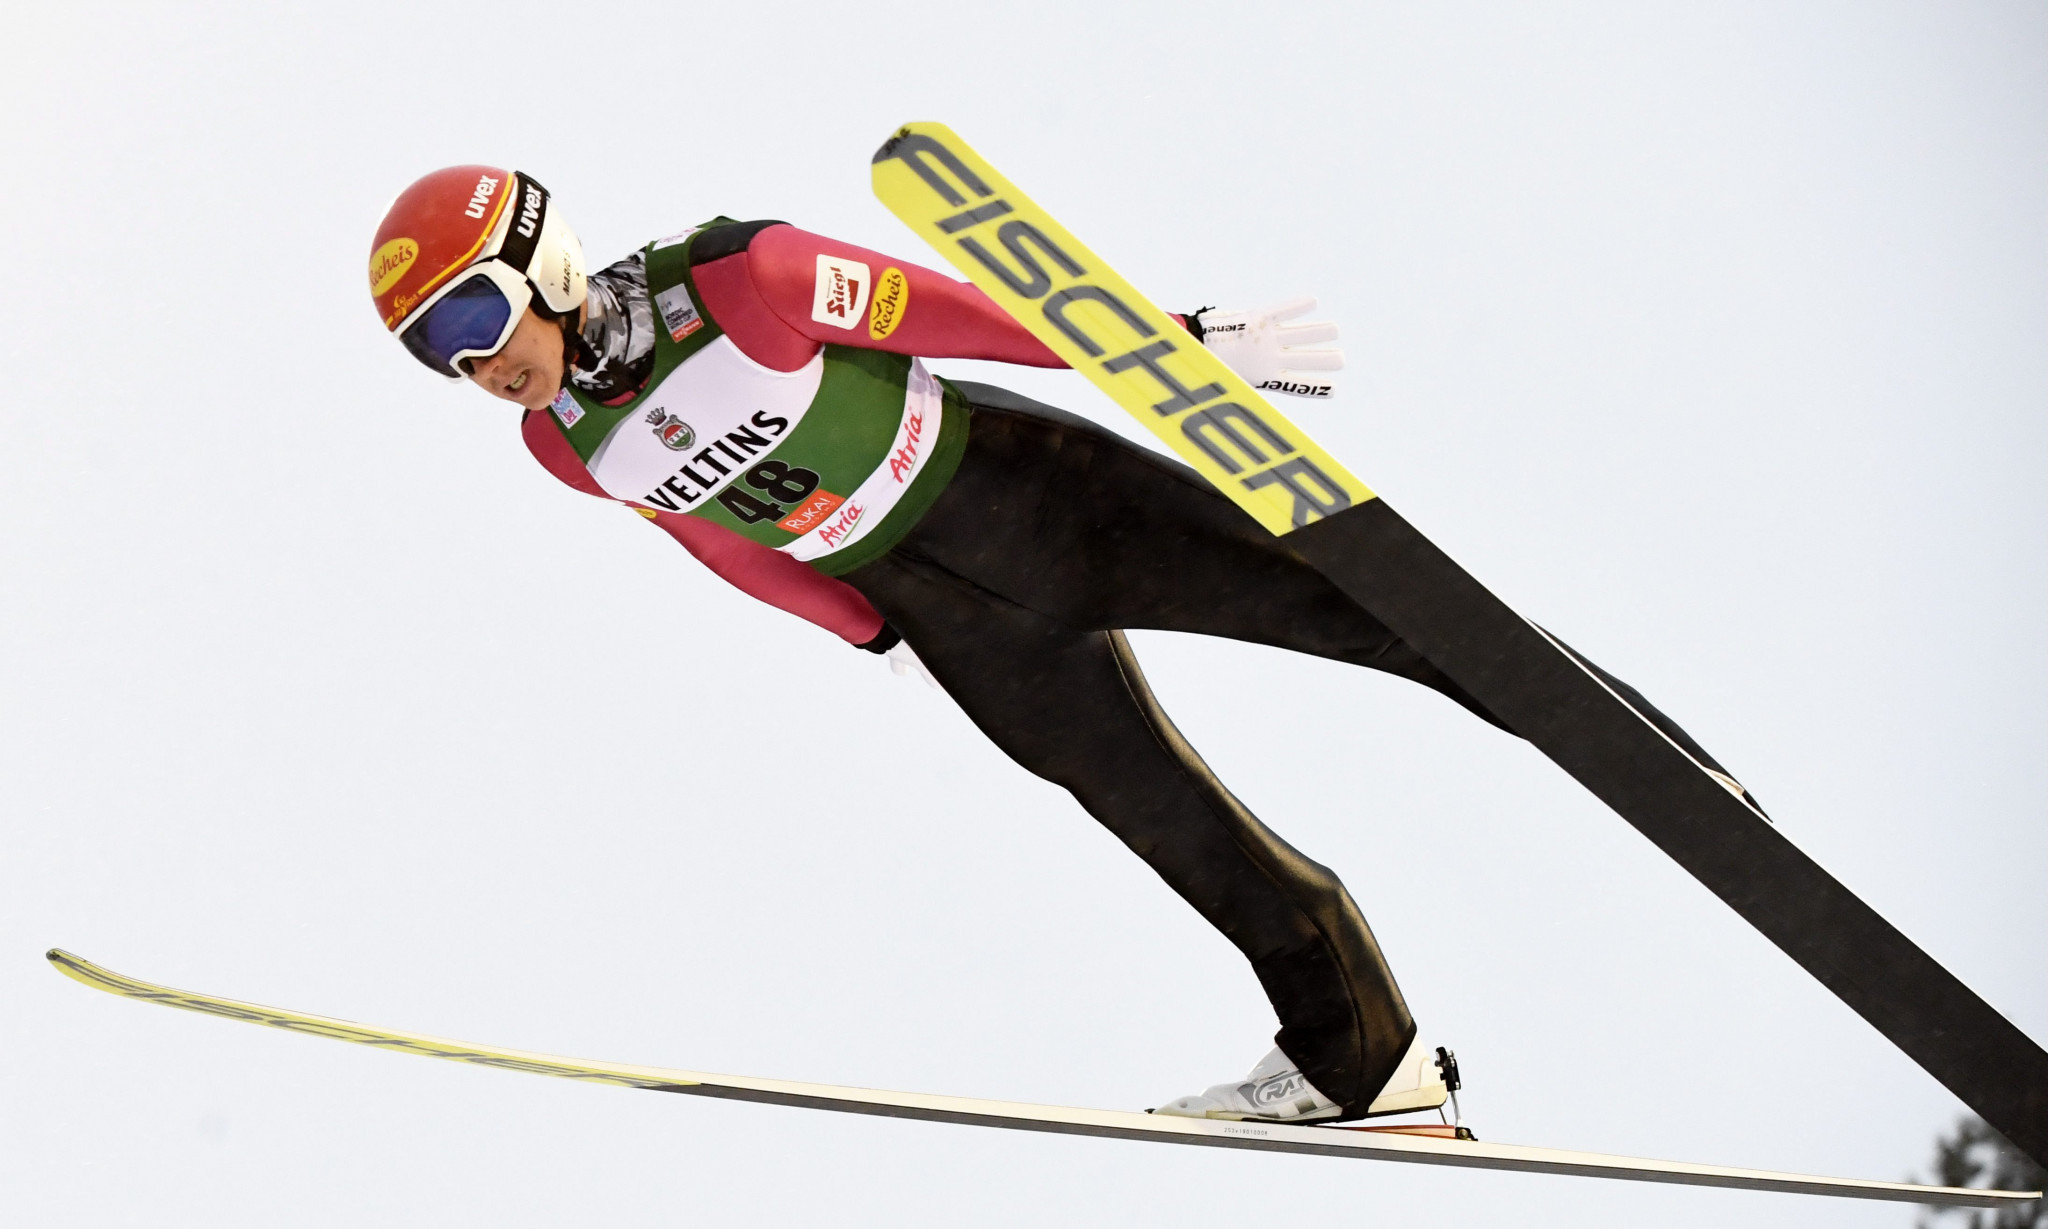 Austria's Mario Seidl is returning to FIS Nordic Combined World Cup action in Lahti after sitting out the last two weekends because of illness which has sidelined him ©Getty Images